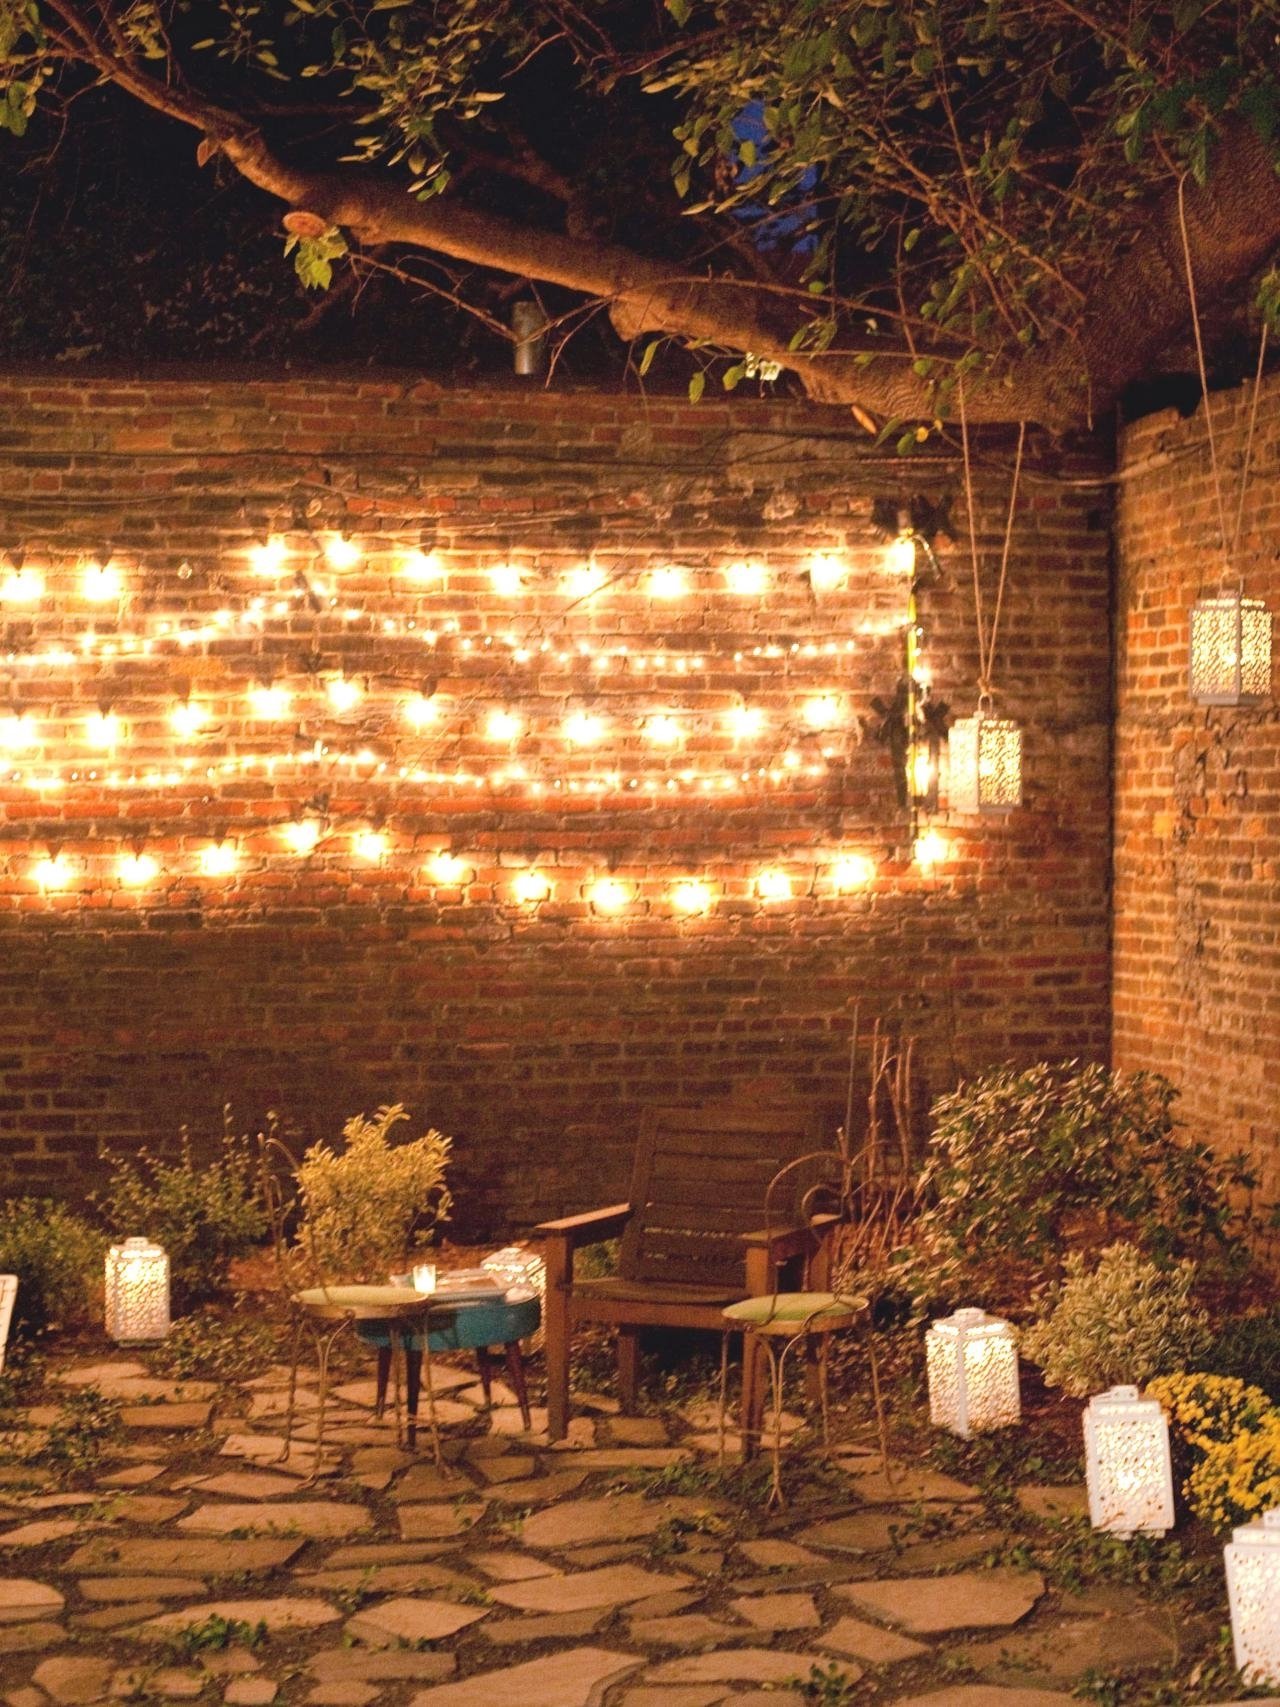 Preferred Garden And Outdoor String Lights Pertaining To Home Lighting : Outdoor Garden String Lighting Poles (View 15 of 20)